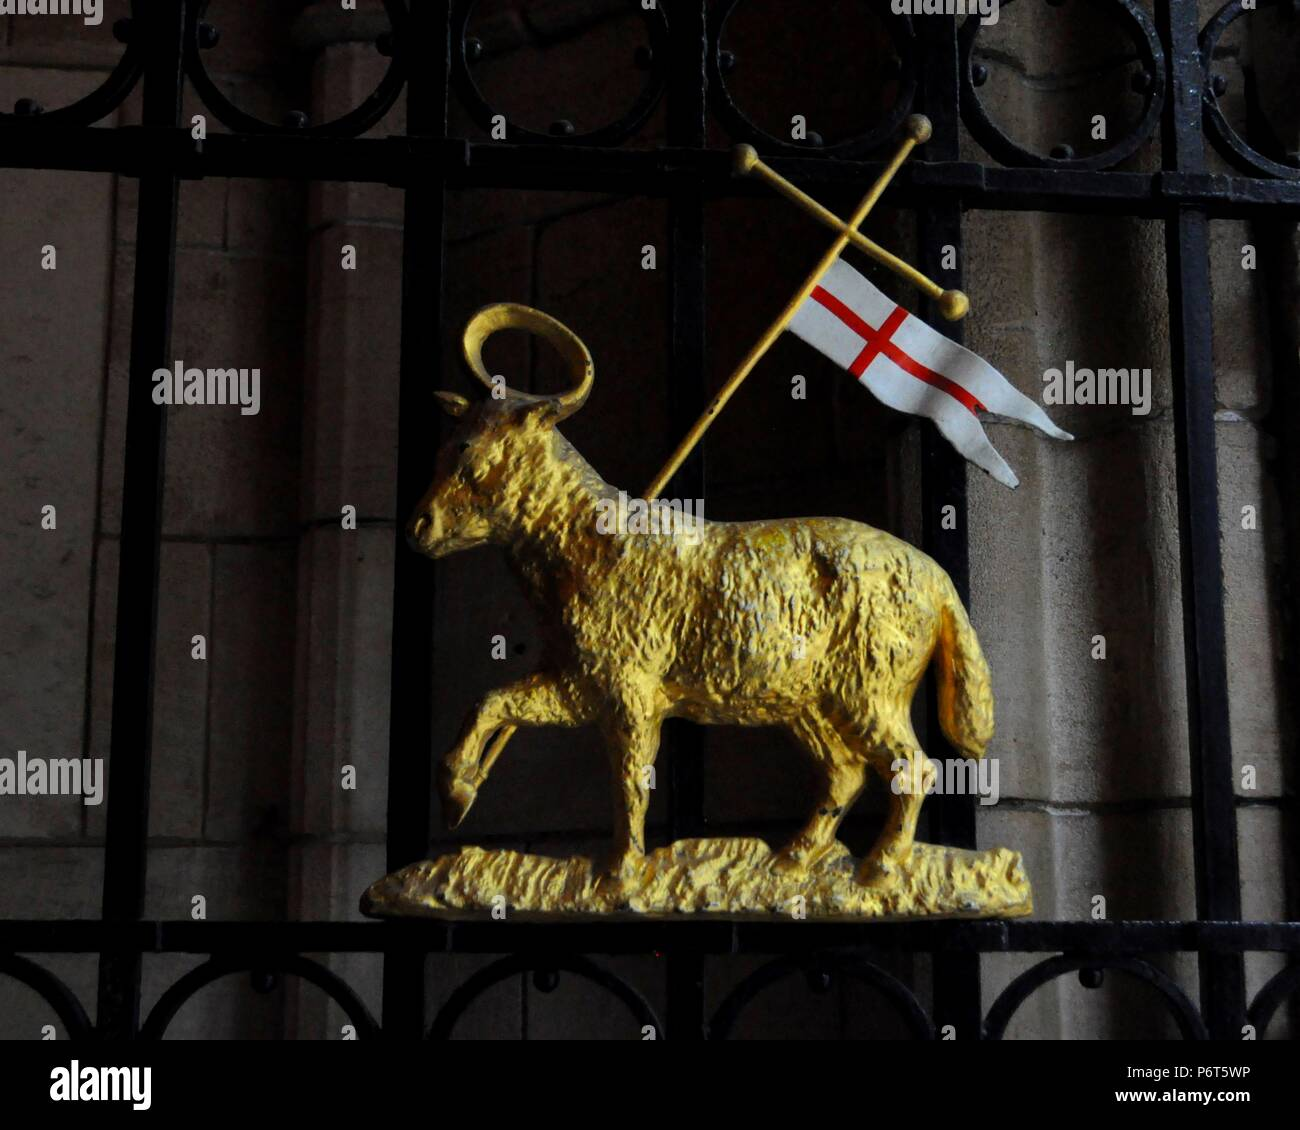 Insignia of Middle Temple on gate of Middle Temple Hall, London UK. - Stock Image